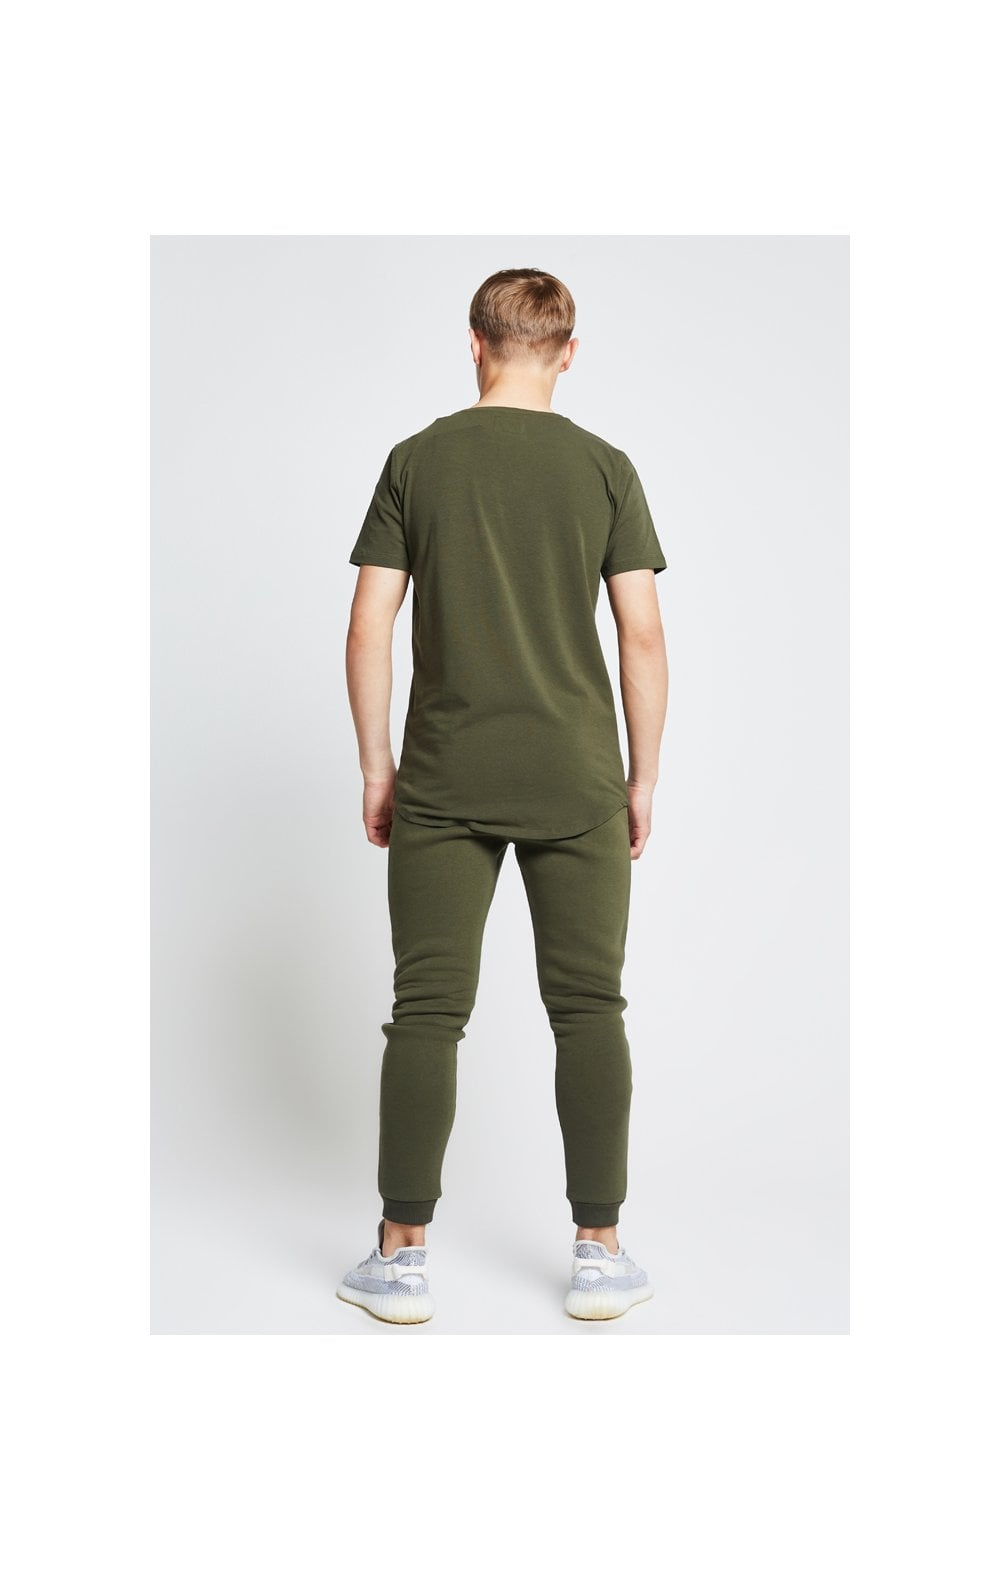 Illusive London Tee – Khaki (4)